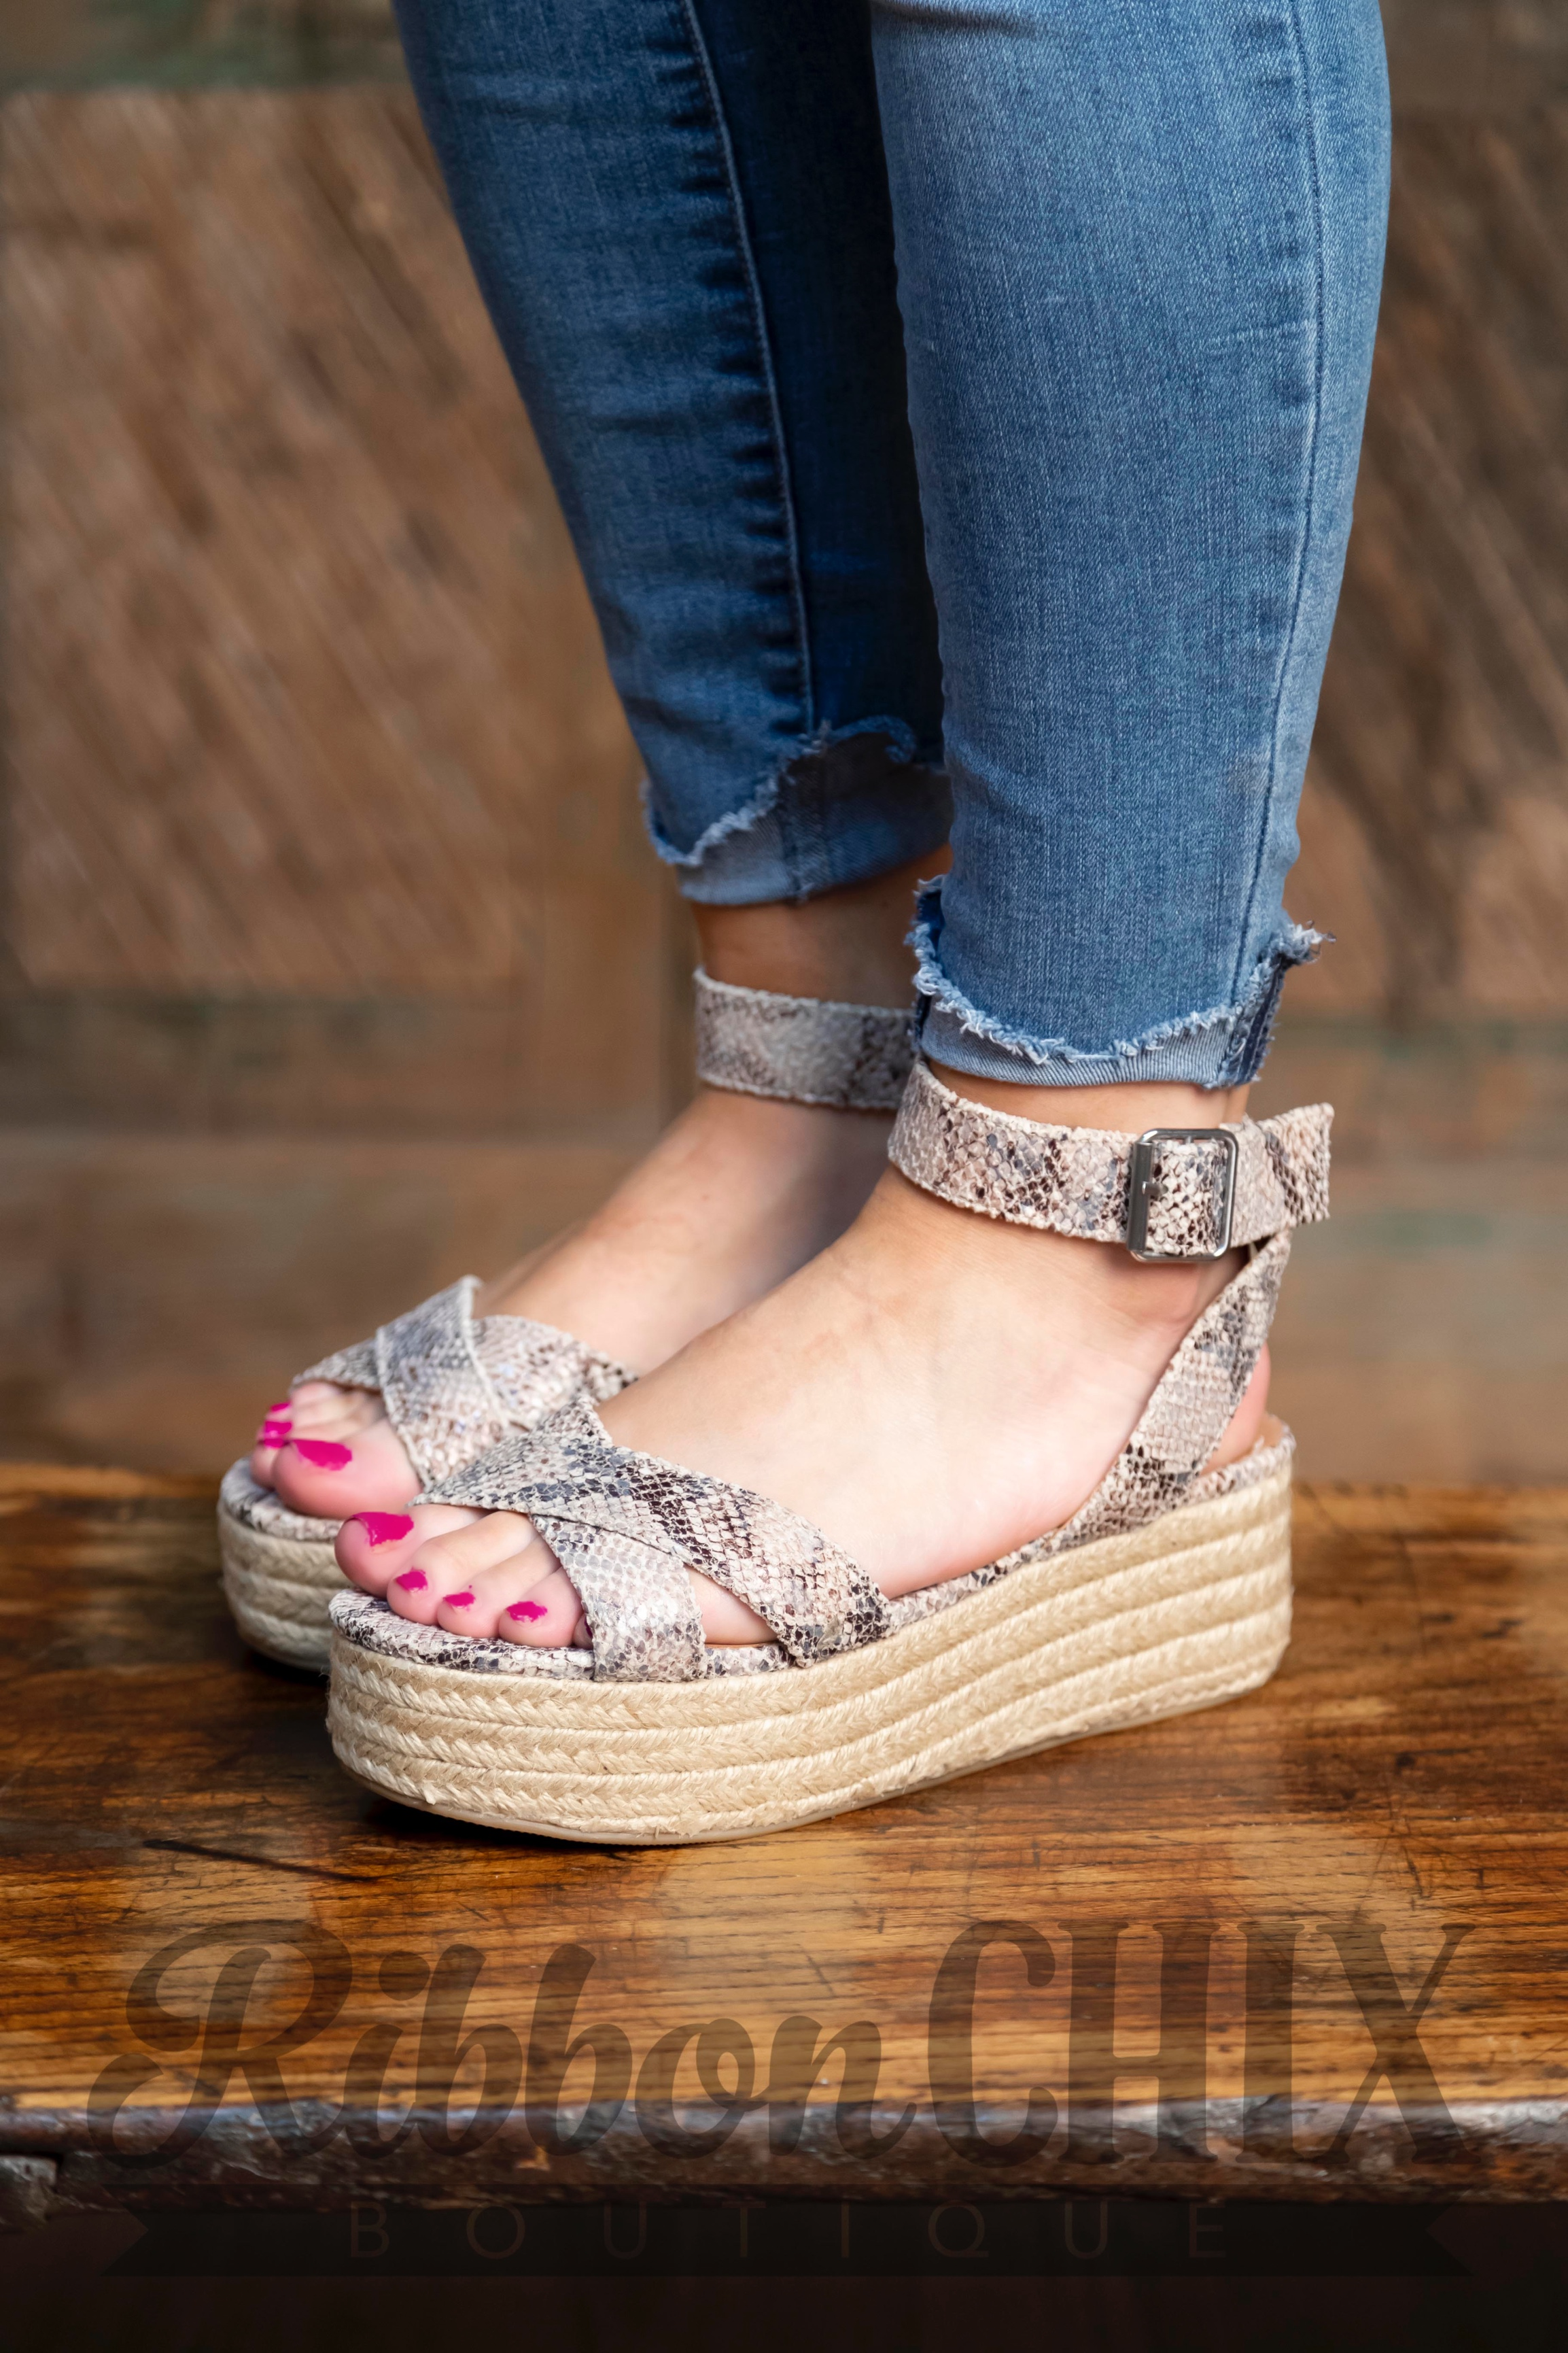 d029717a4e5 Chinese Laundry Zala Sandal. (Click image to enlarge). A super-chunky espadrille  platform ...